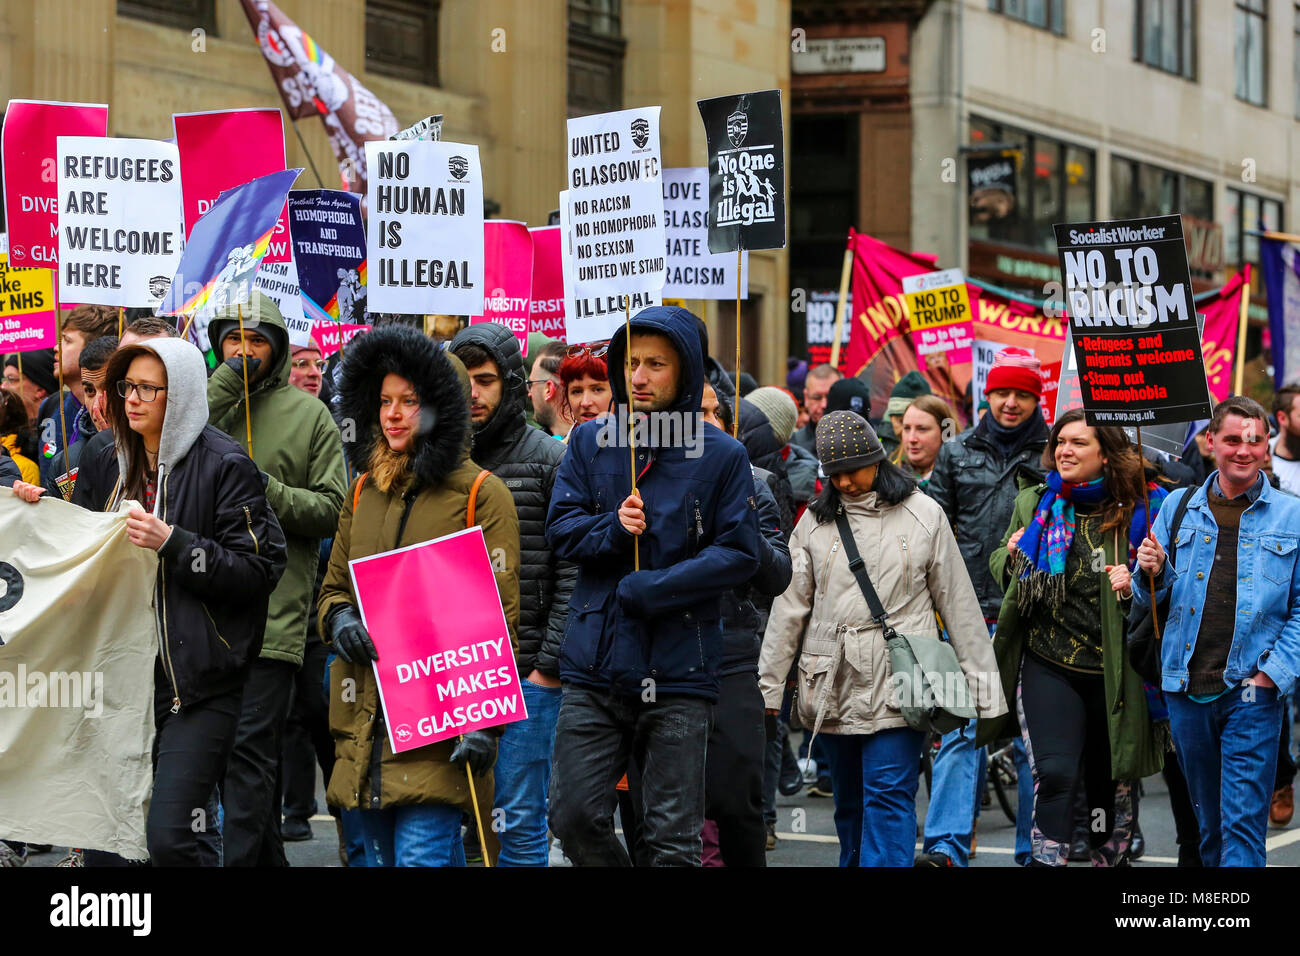 Glasgow, UK, 17 Mar 2018. Several thousand people, including local and national politicians along with prominent - Stock Image